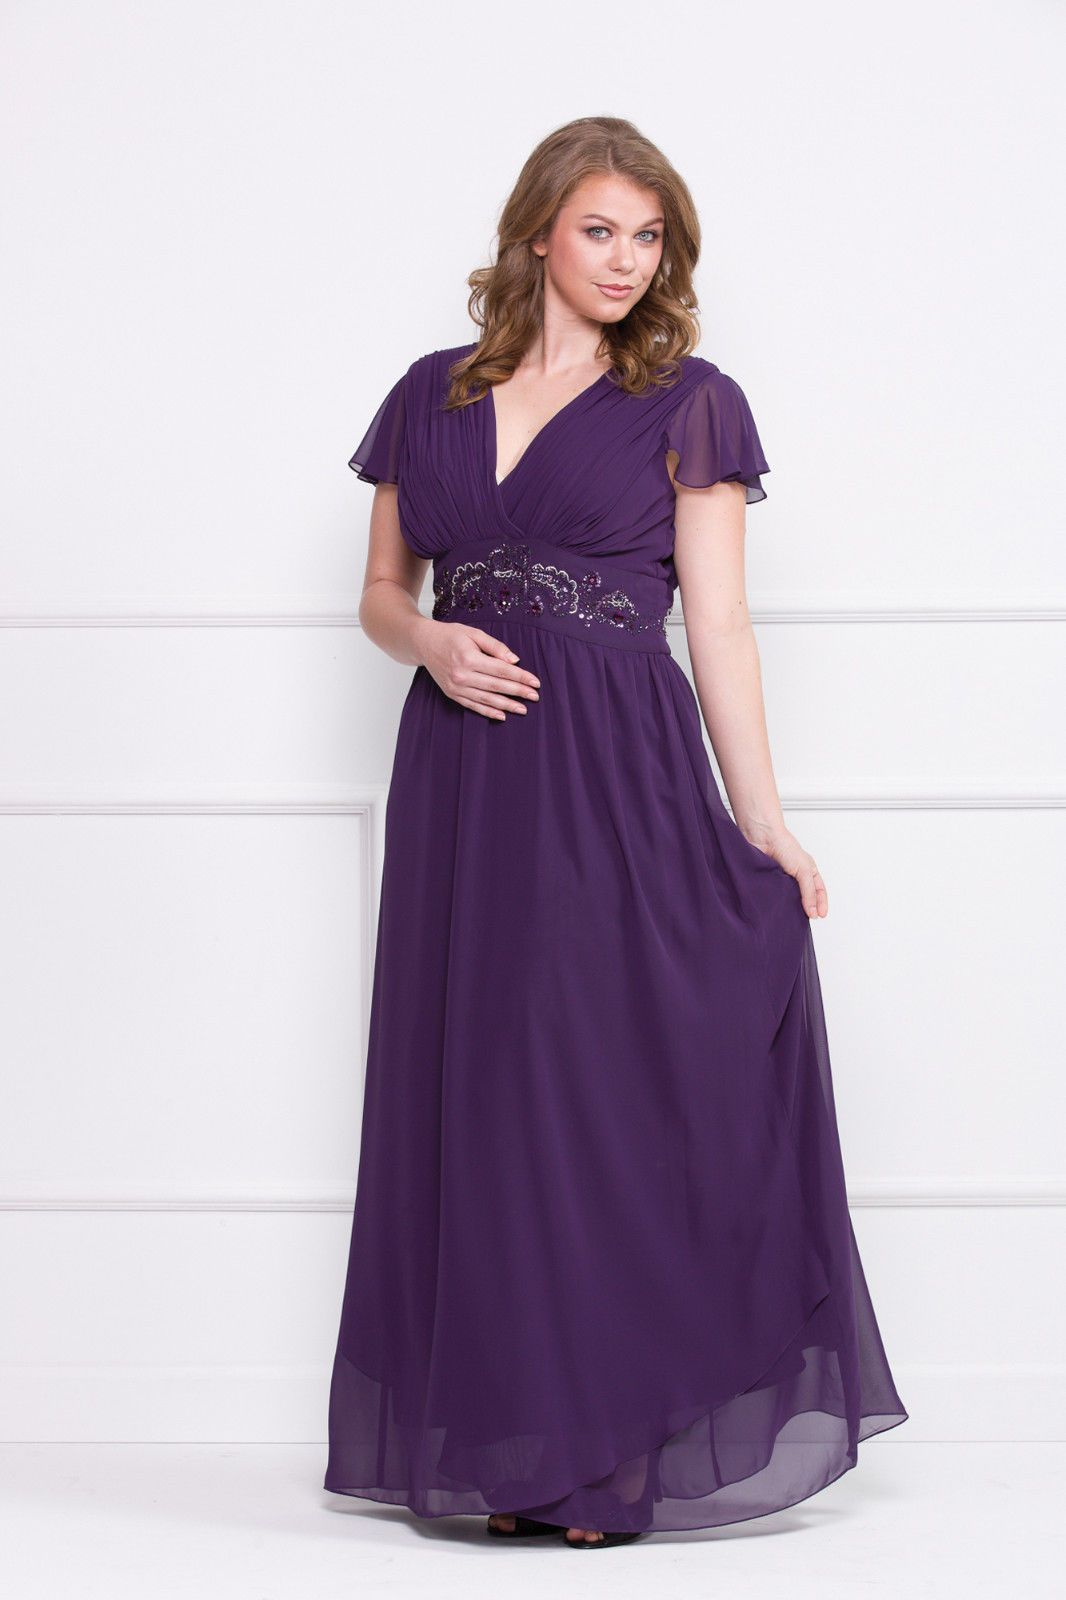 3b74a83cc26 Long Plus Size Plum Color Formal Dress Short Sleeves Chiffon Mother of the  Bride On Sale Now